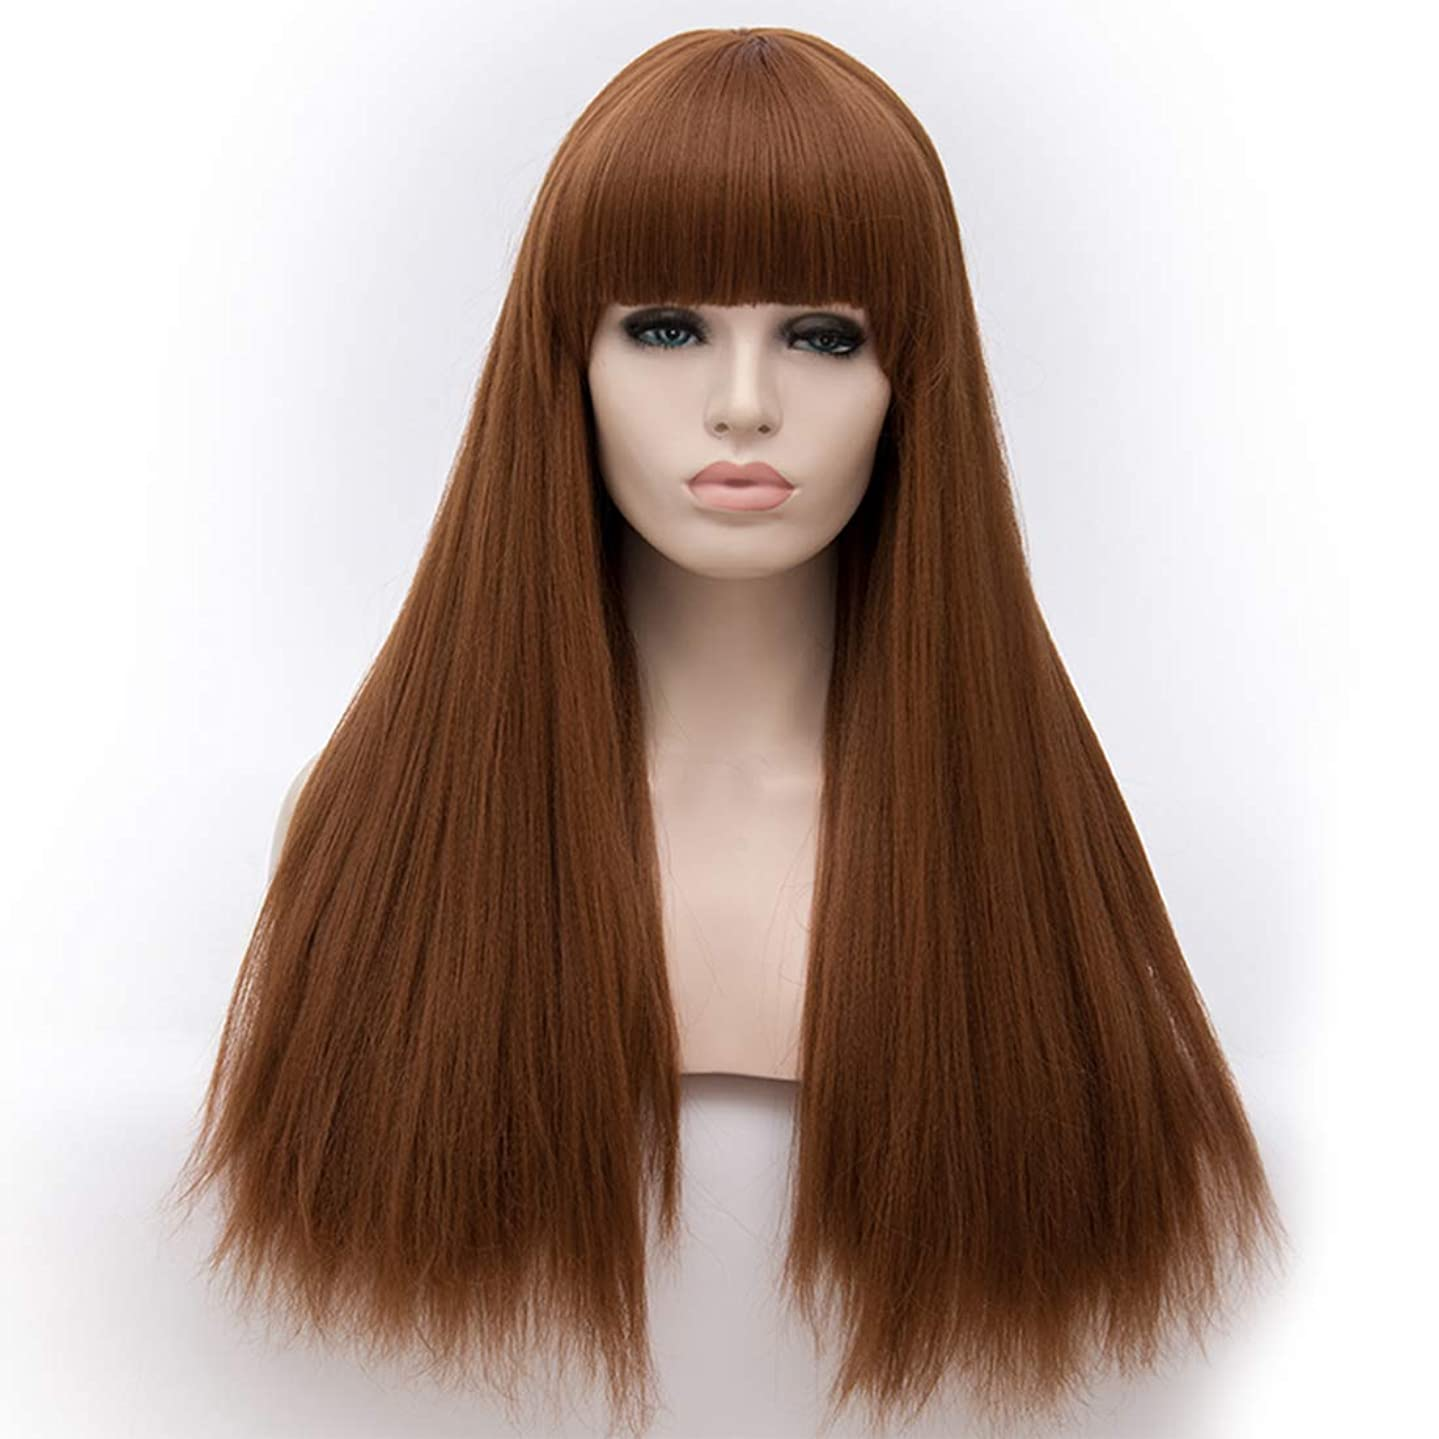 Alacos Fashion 65CM Long Straight Lolita Harajuku Brow-Skimming Bangs Daily Party Costumes Wigs for Women +Free Wig Cap (Brown)